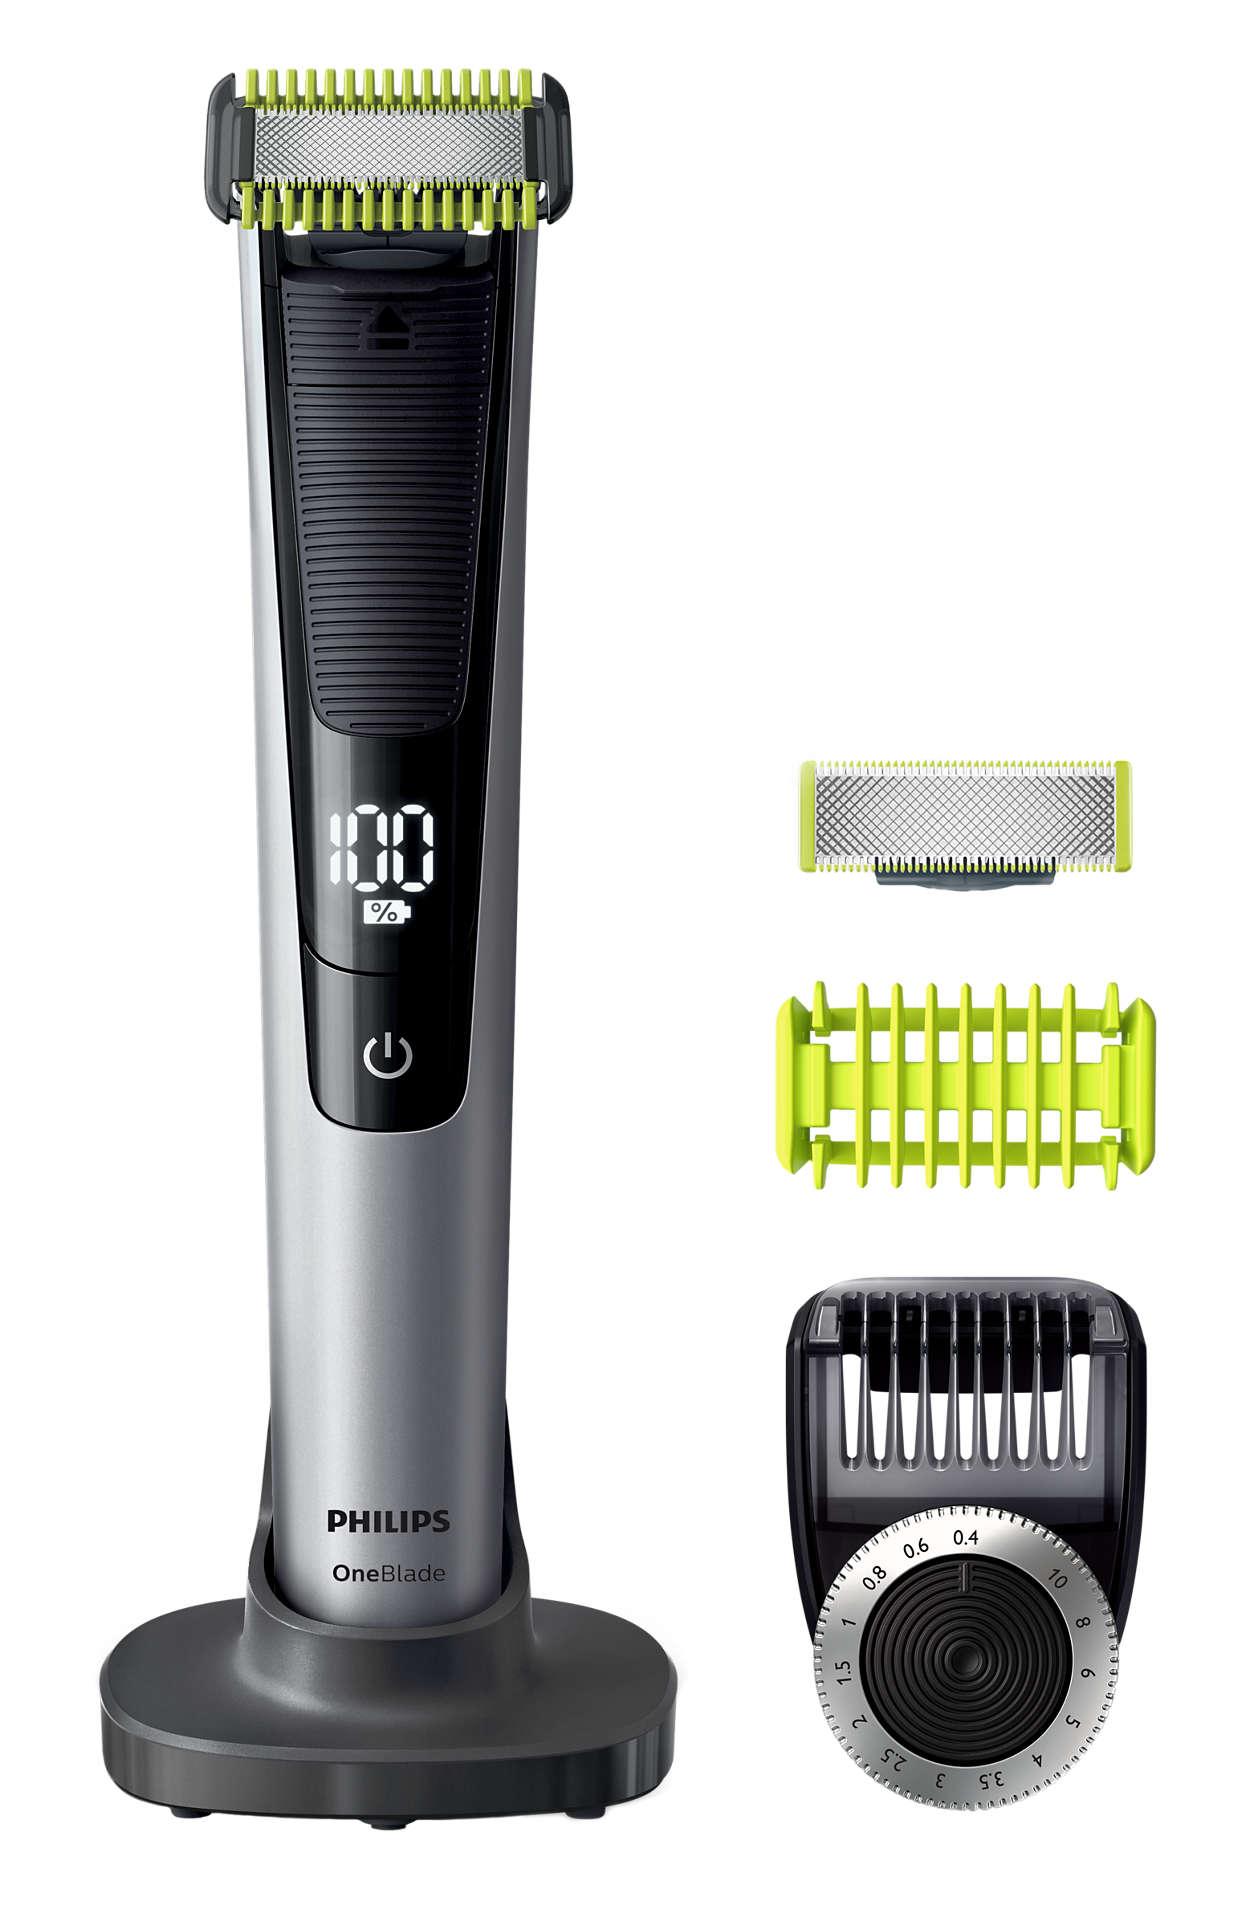 OneBlade QP252030 | Philips